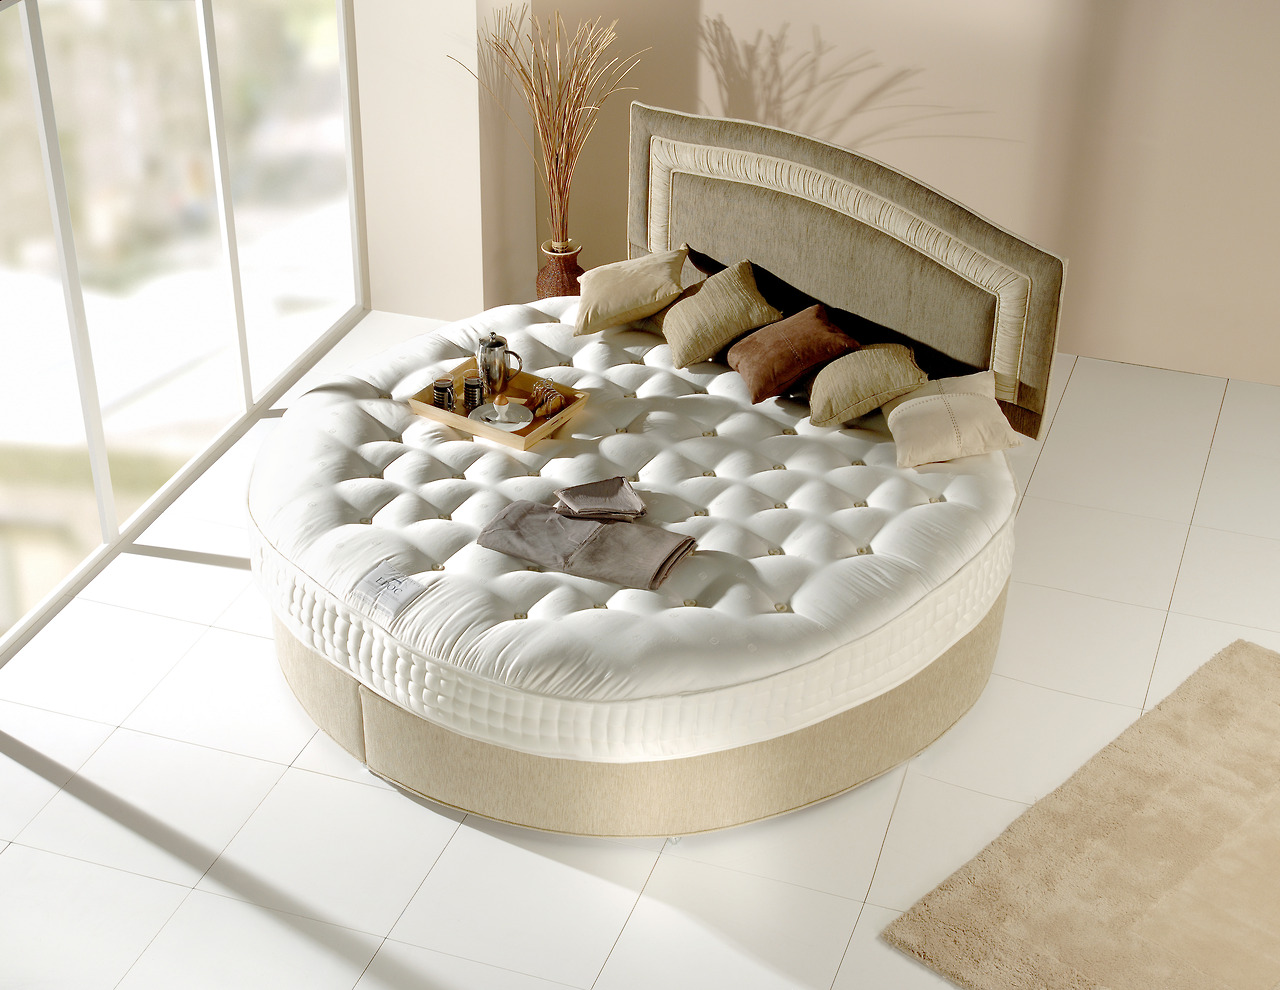 Round Beds | Round Bed Sofa | Round Ikea Bed